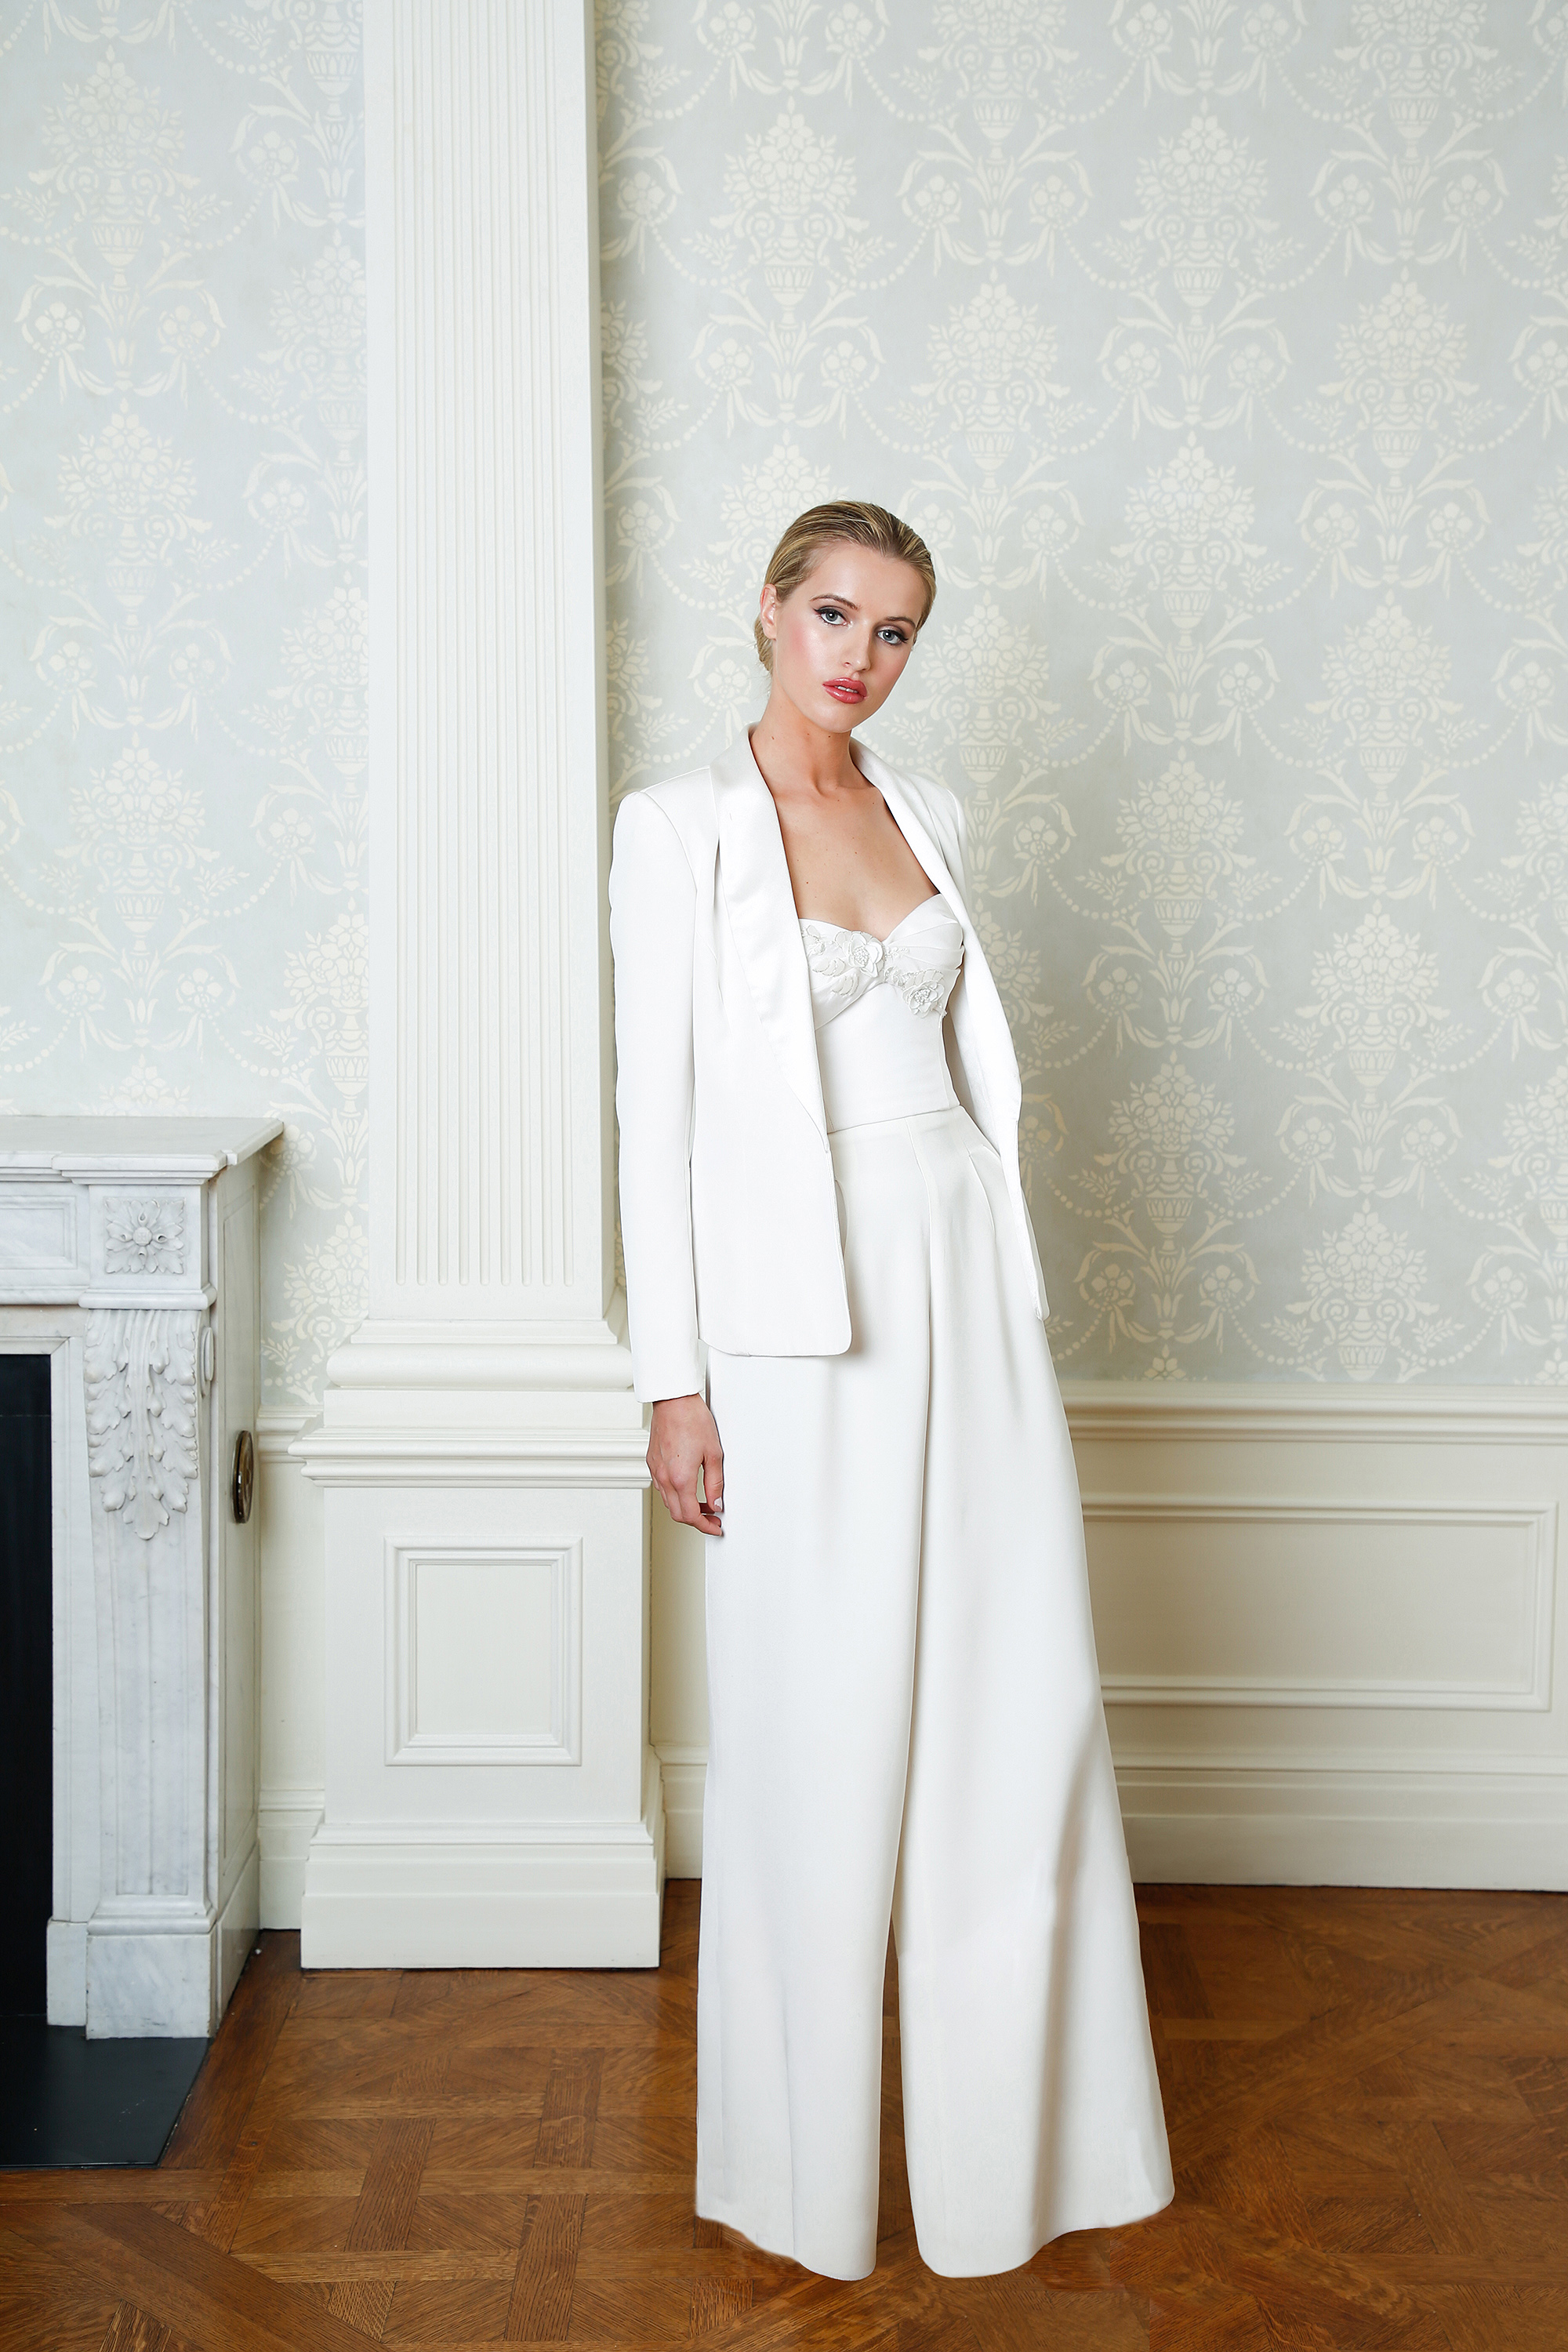 Cristina Ottaviano wedding dress spring 2019 pantsuit with wide leg pants